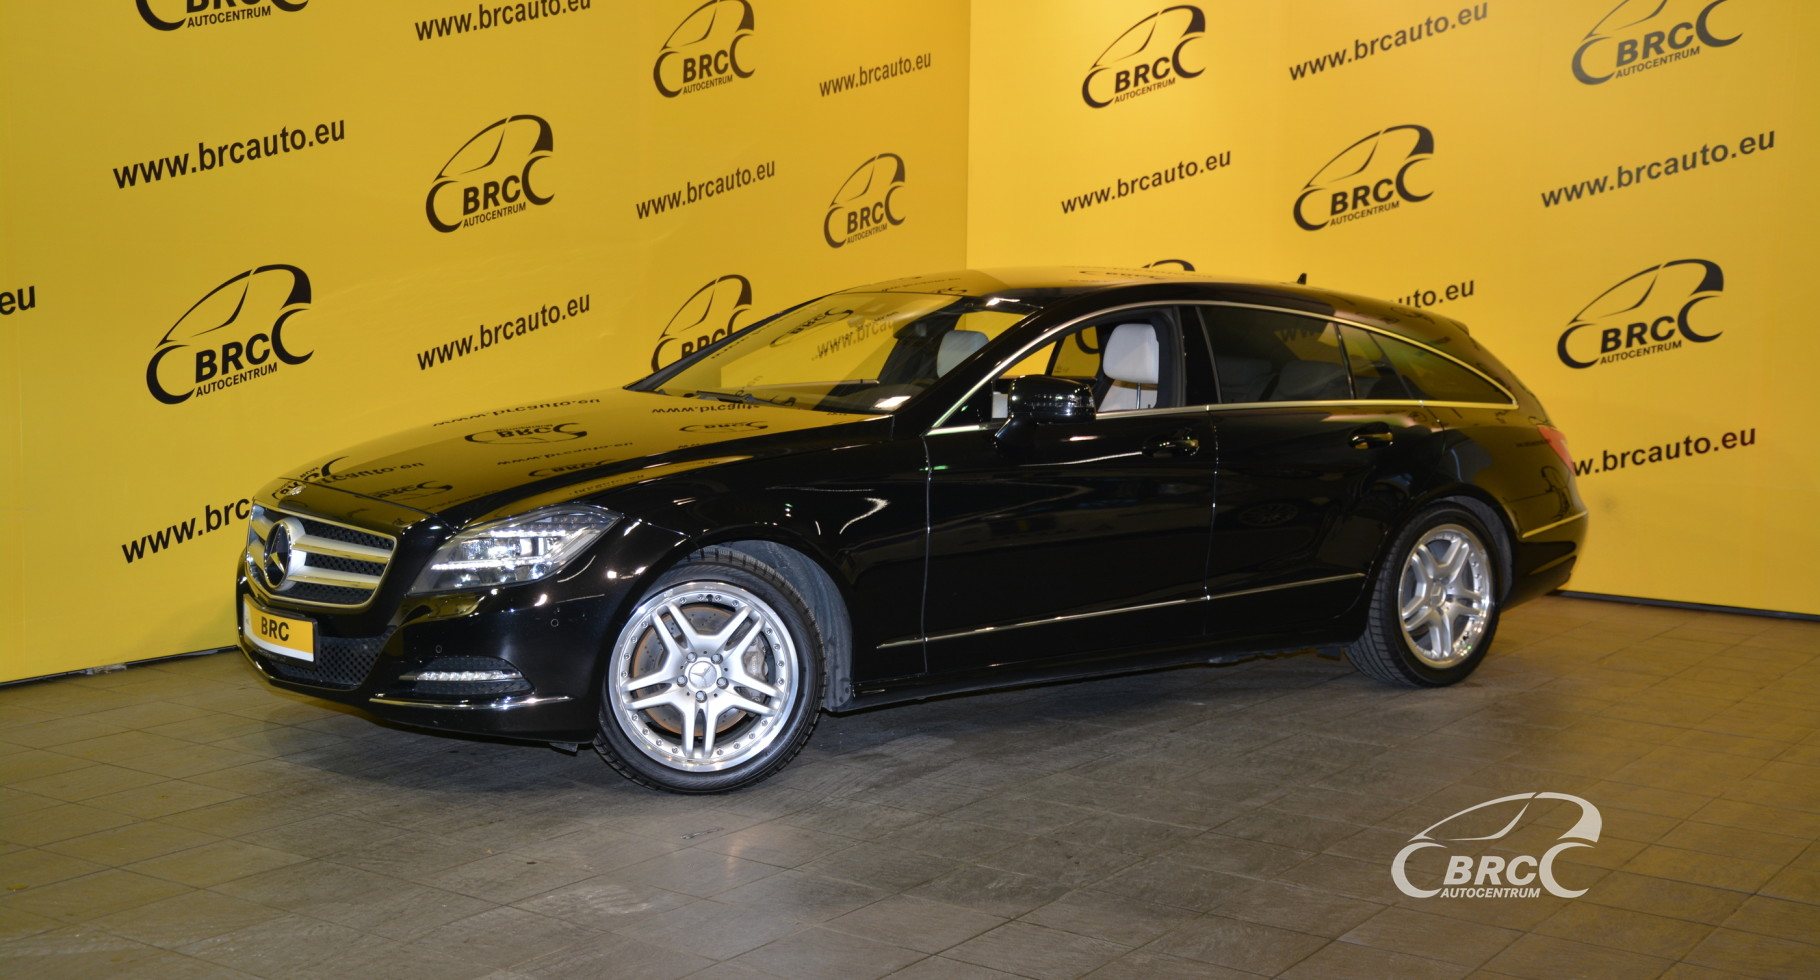 Mercedes-Benz CLS 350 CDI 4Matic Shooting Brake